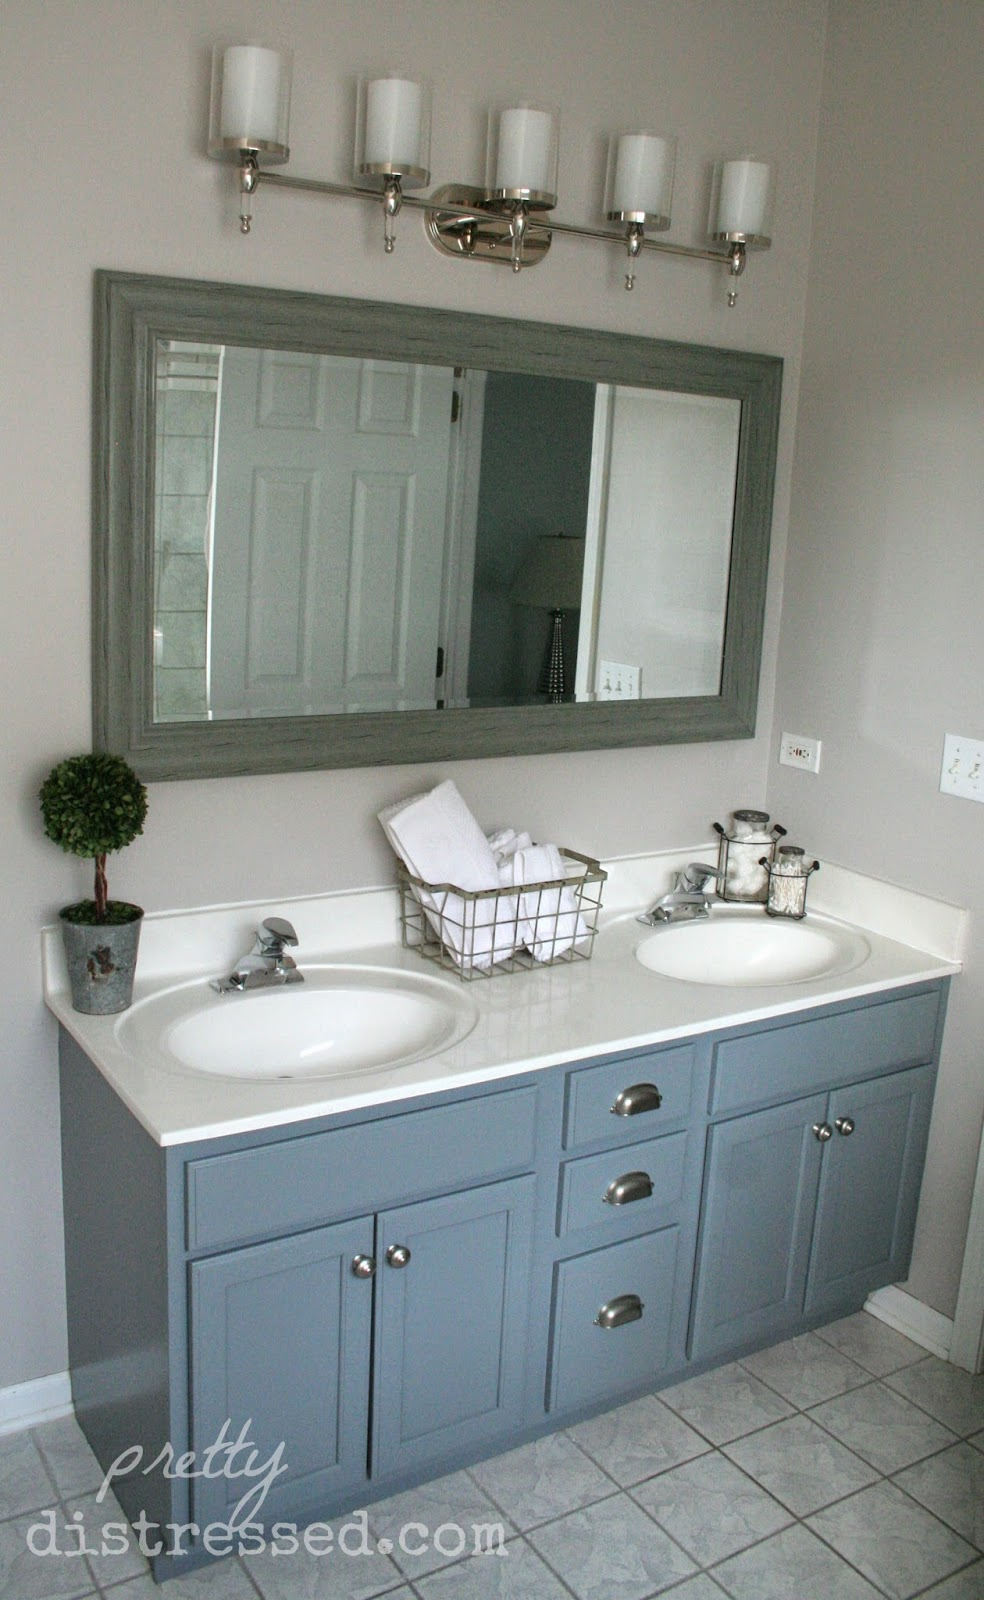 Painted Bathroom Cabinets Before And After gray painted bathroom cabinets grey bathroom cabinets design ideas